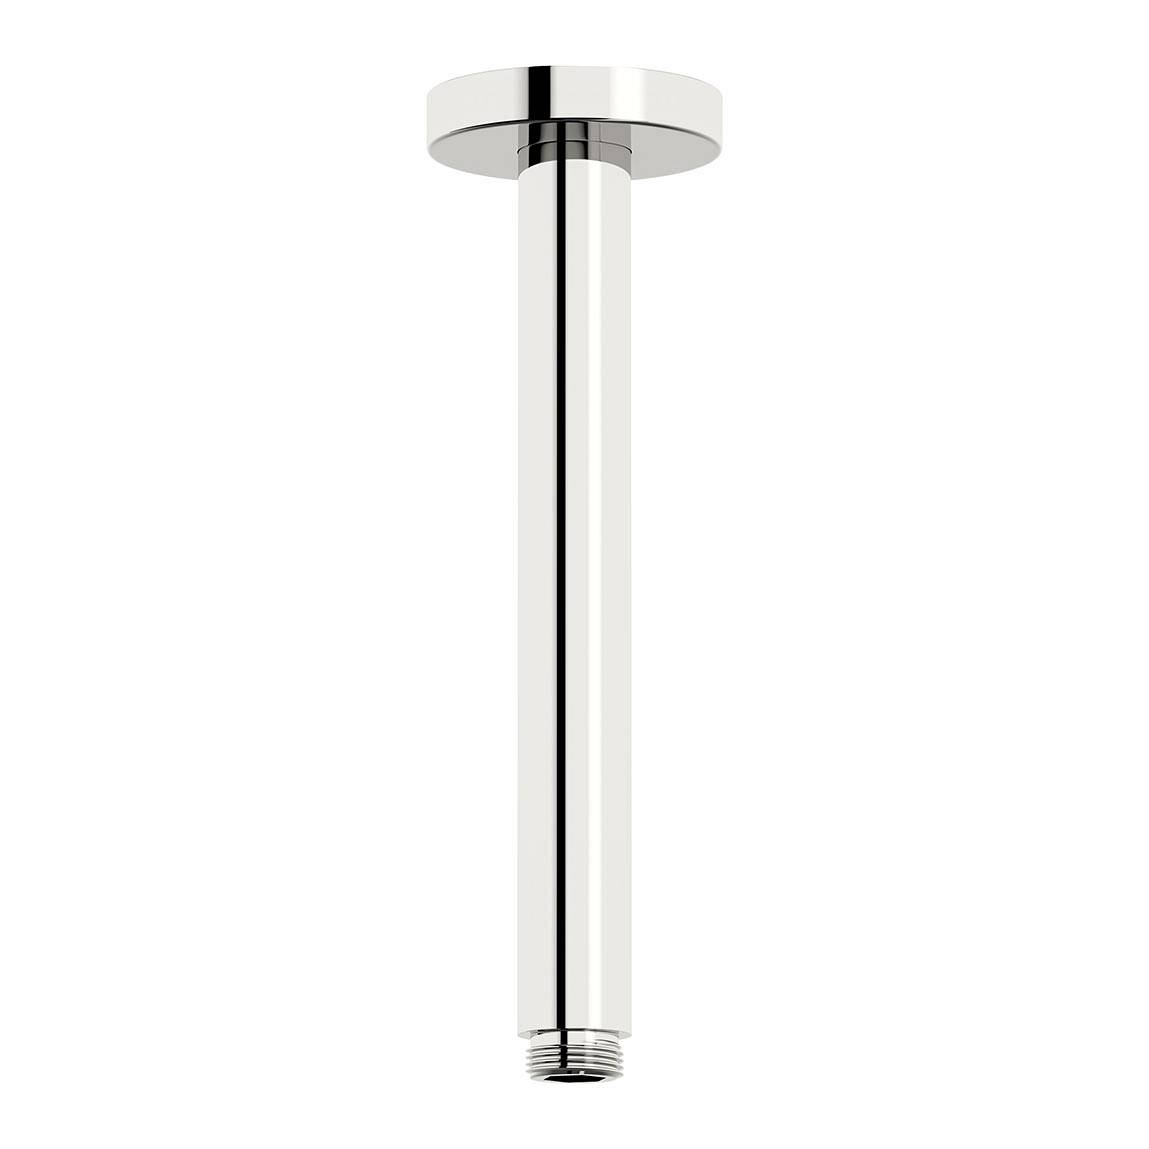 Image of Ceiling Shower Arm 200mm Round